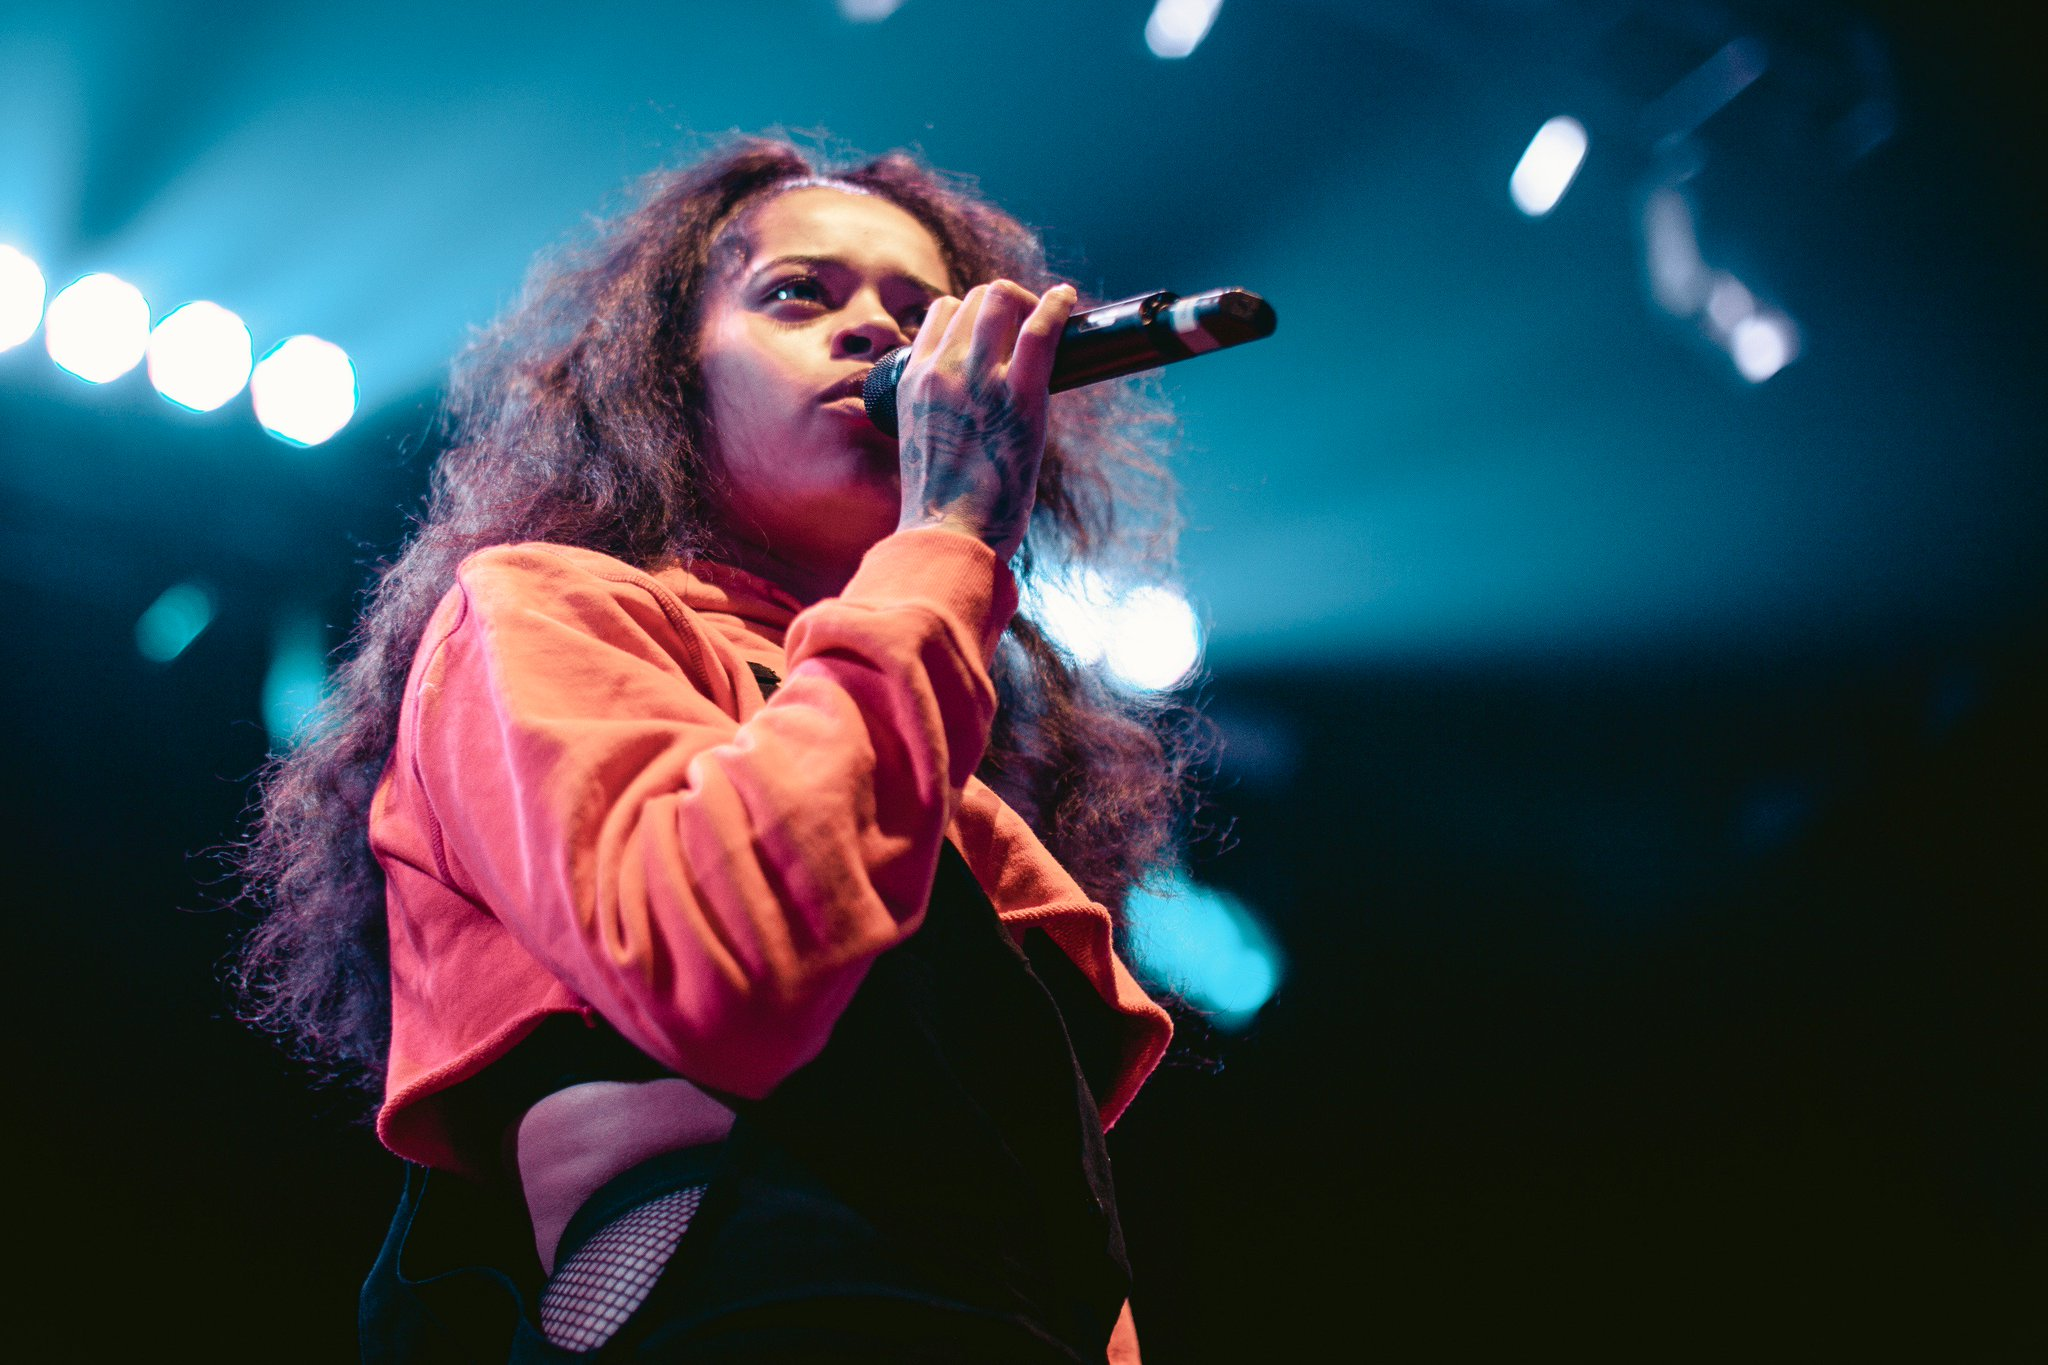 .@ellamai performing at the @BBowlVegas in Las Vegas. Photos by @megmeyer. https://t.co/CeoUn0qXIm